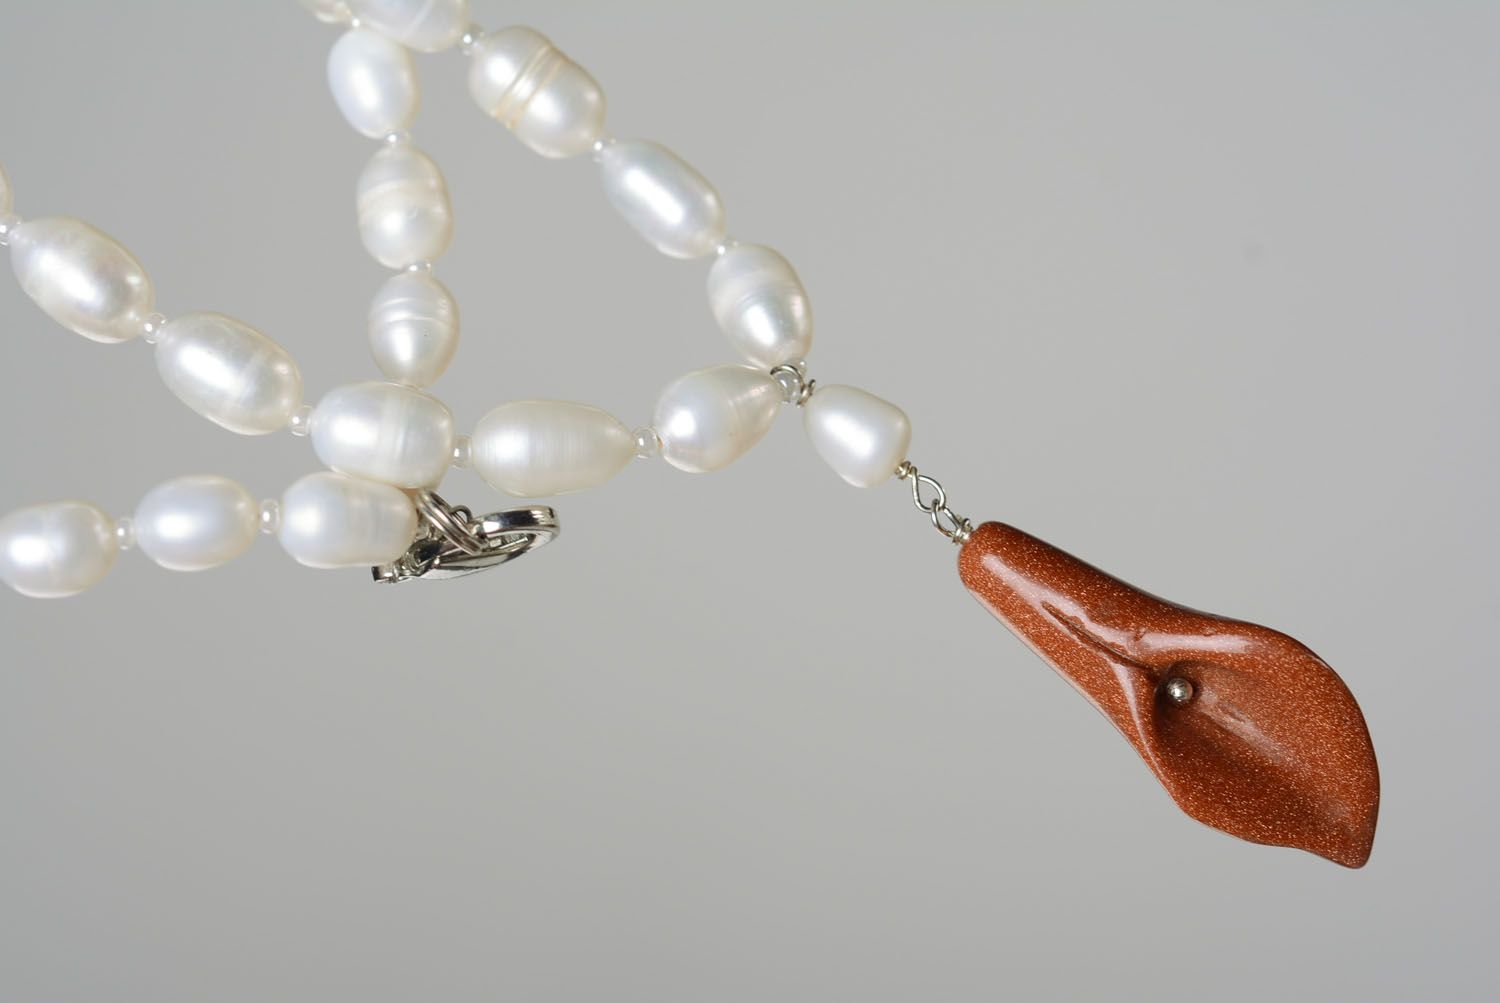 Necklace with pearls and aventurine photo 5